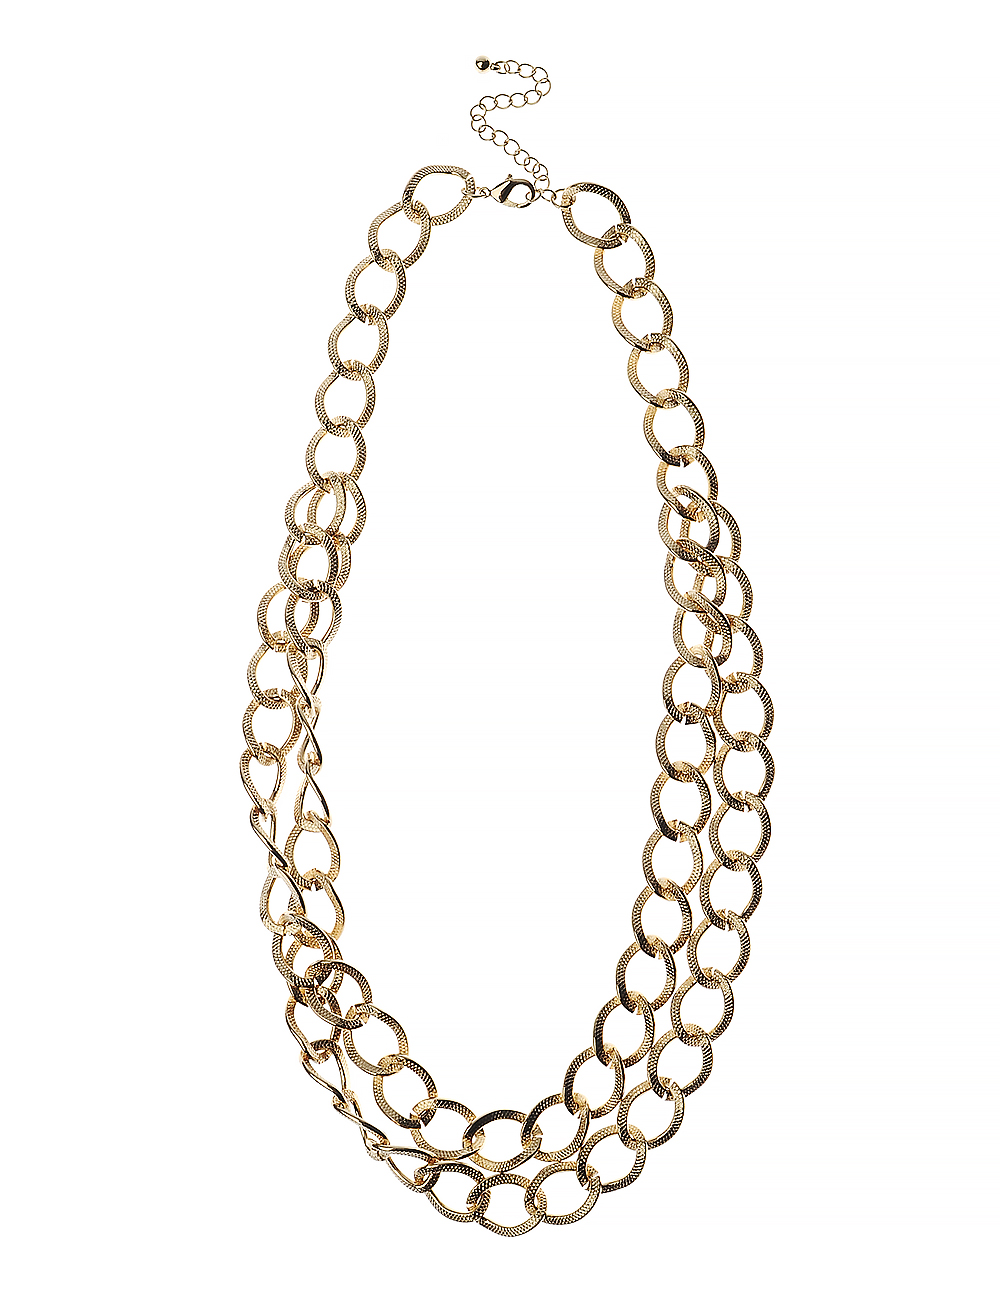 2 Row Gold Textured Link Necklace